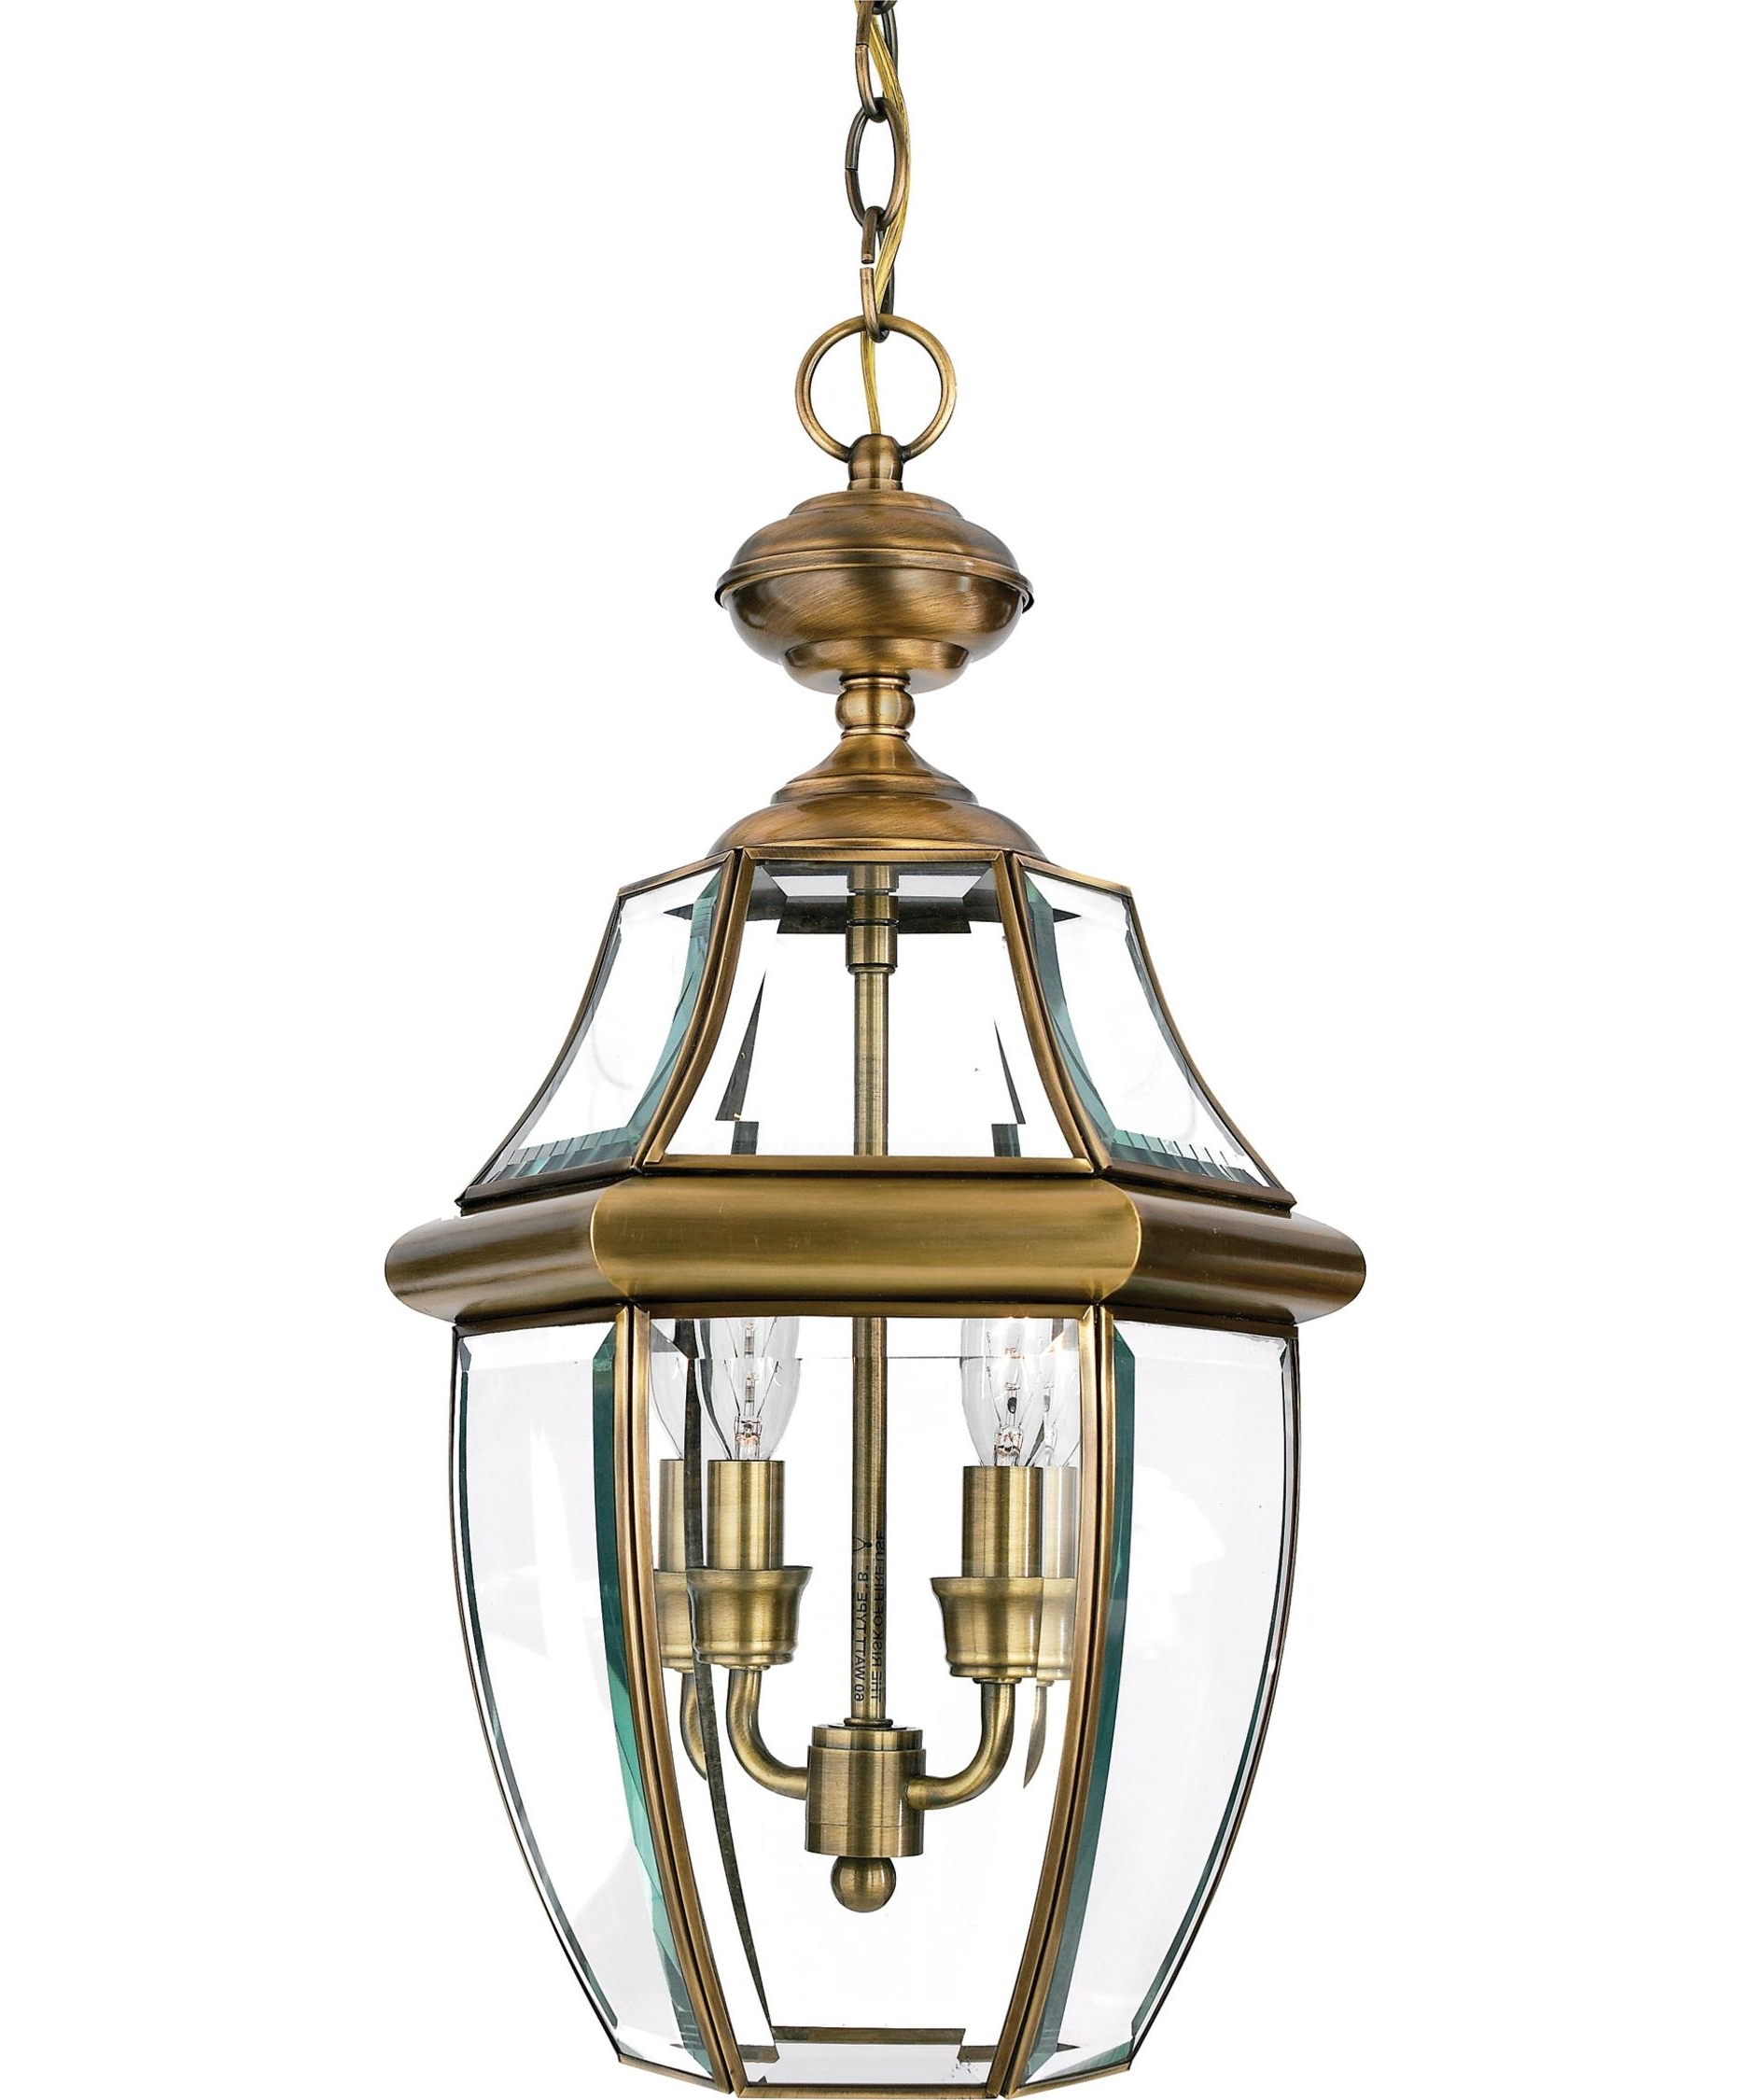 Outdoor Hanging Lights Within Famous Quoizel Ny1178 Newbury 10 Inch Wide 2 Light Outdoor Hanging Lantern (View 14 of 20)